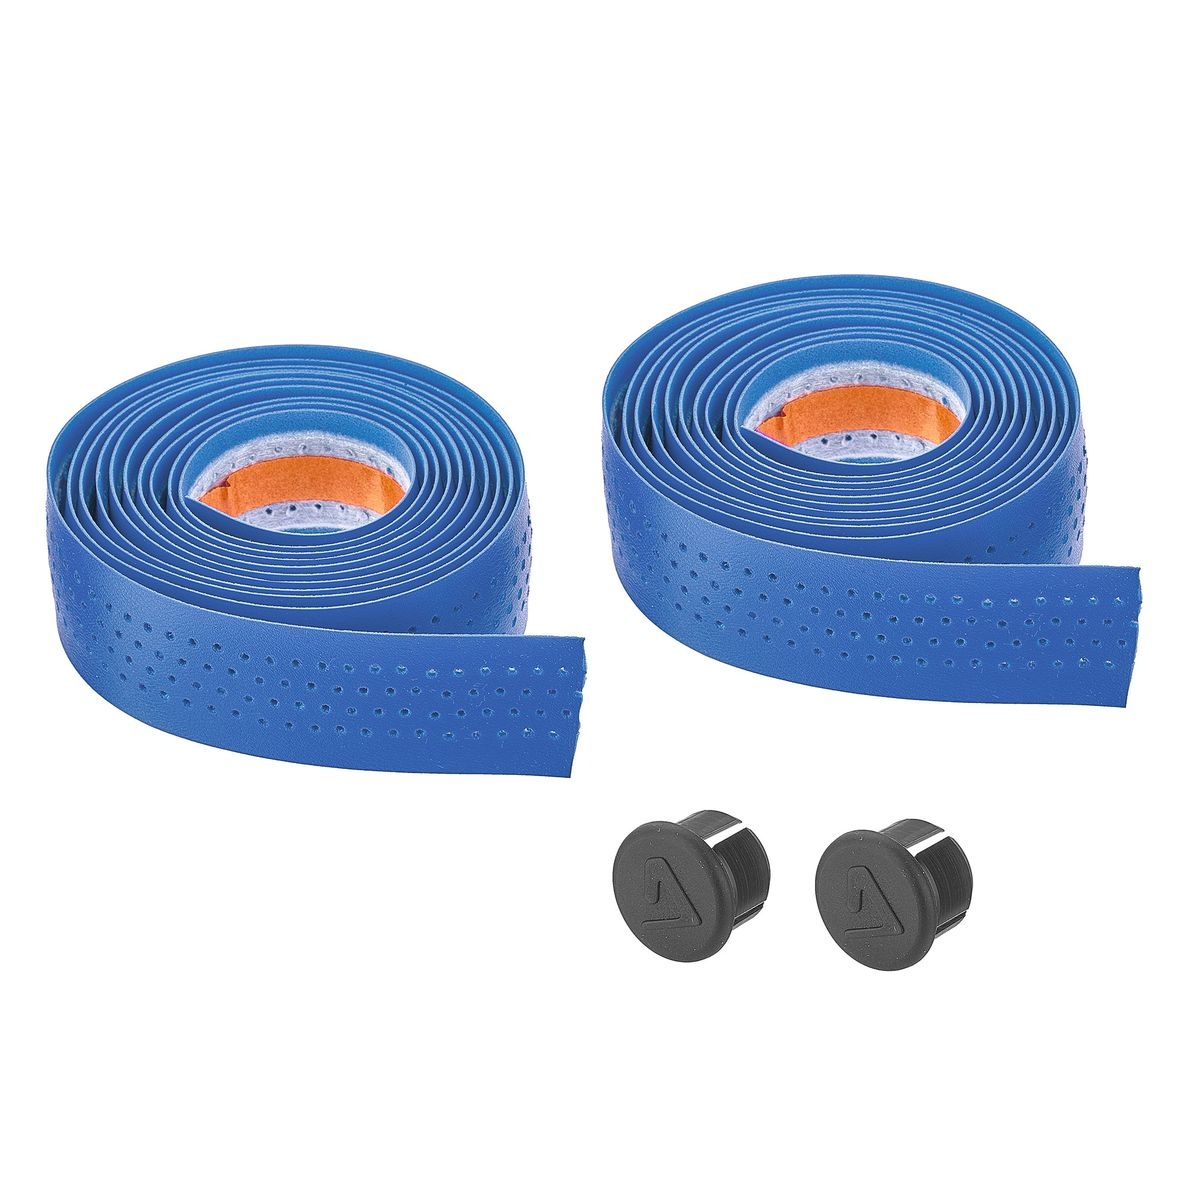 Guidoline Soft Grip handlebar tape